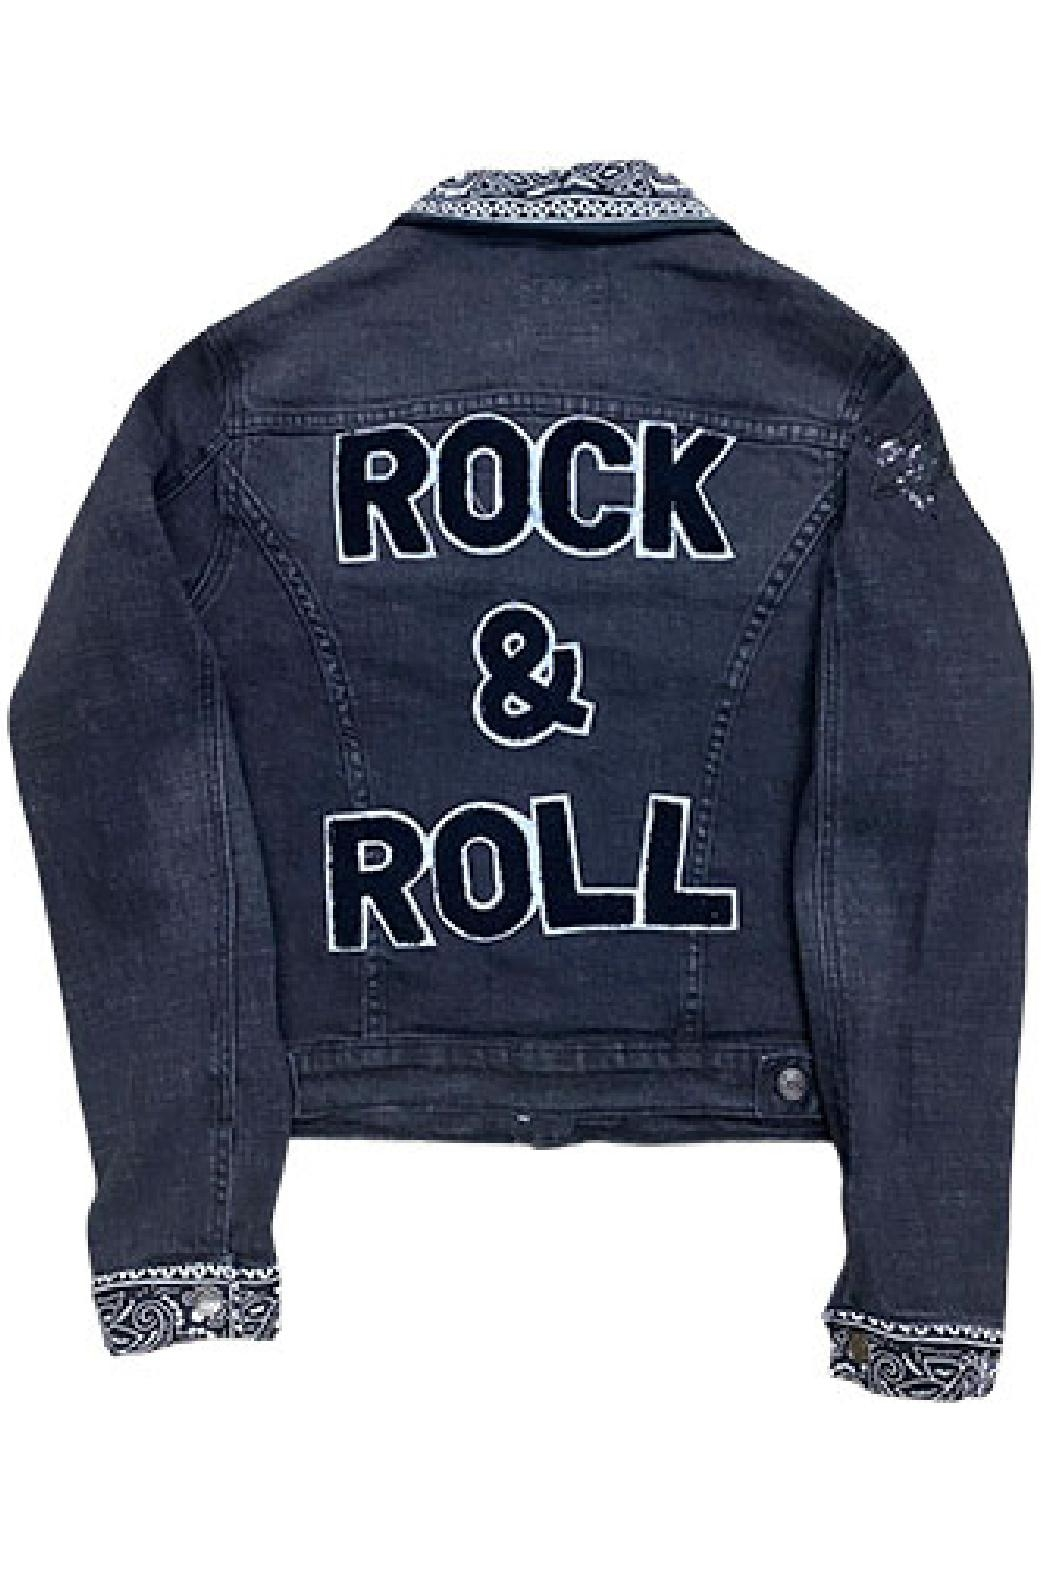 Sojara Vintage Denim Rock And Roll Jacket - Front Cropped Image